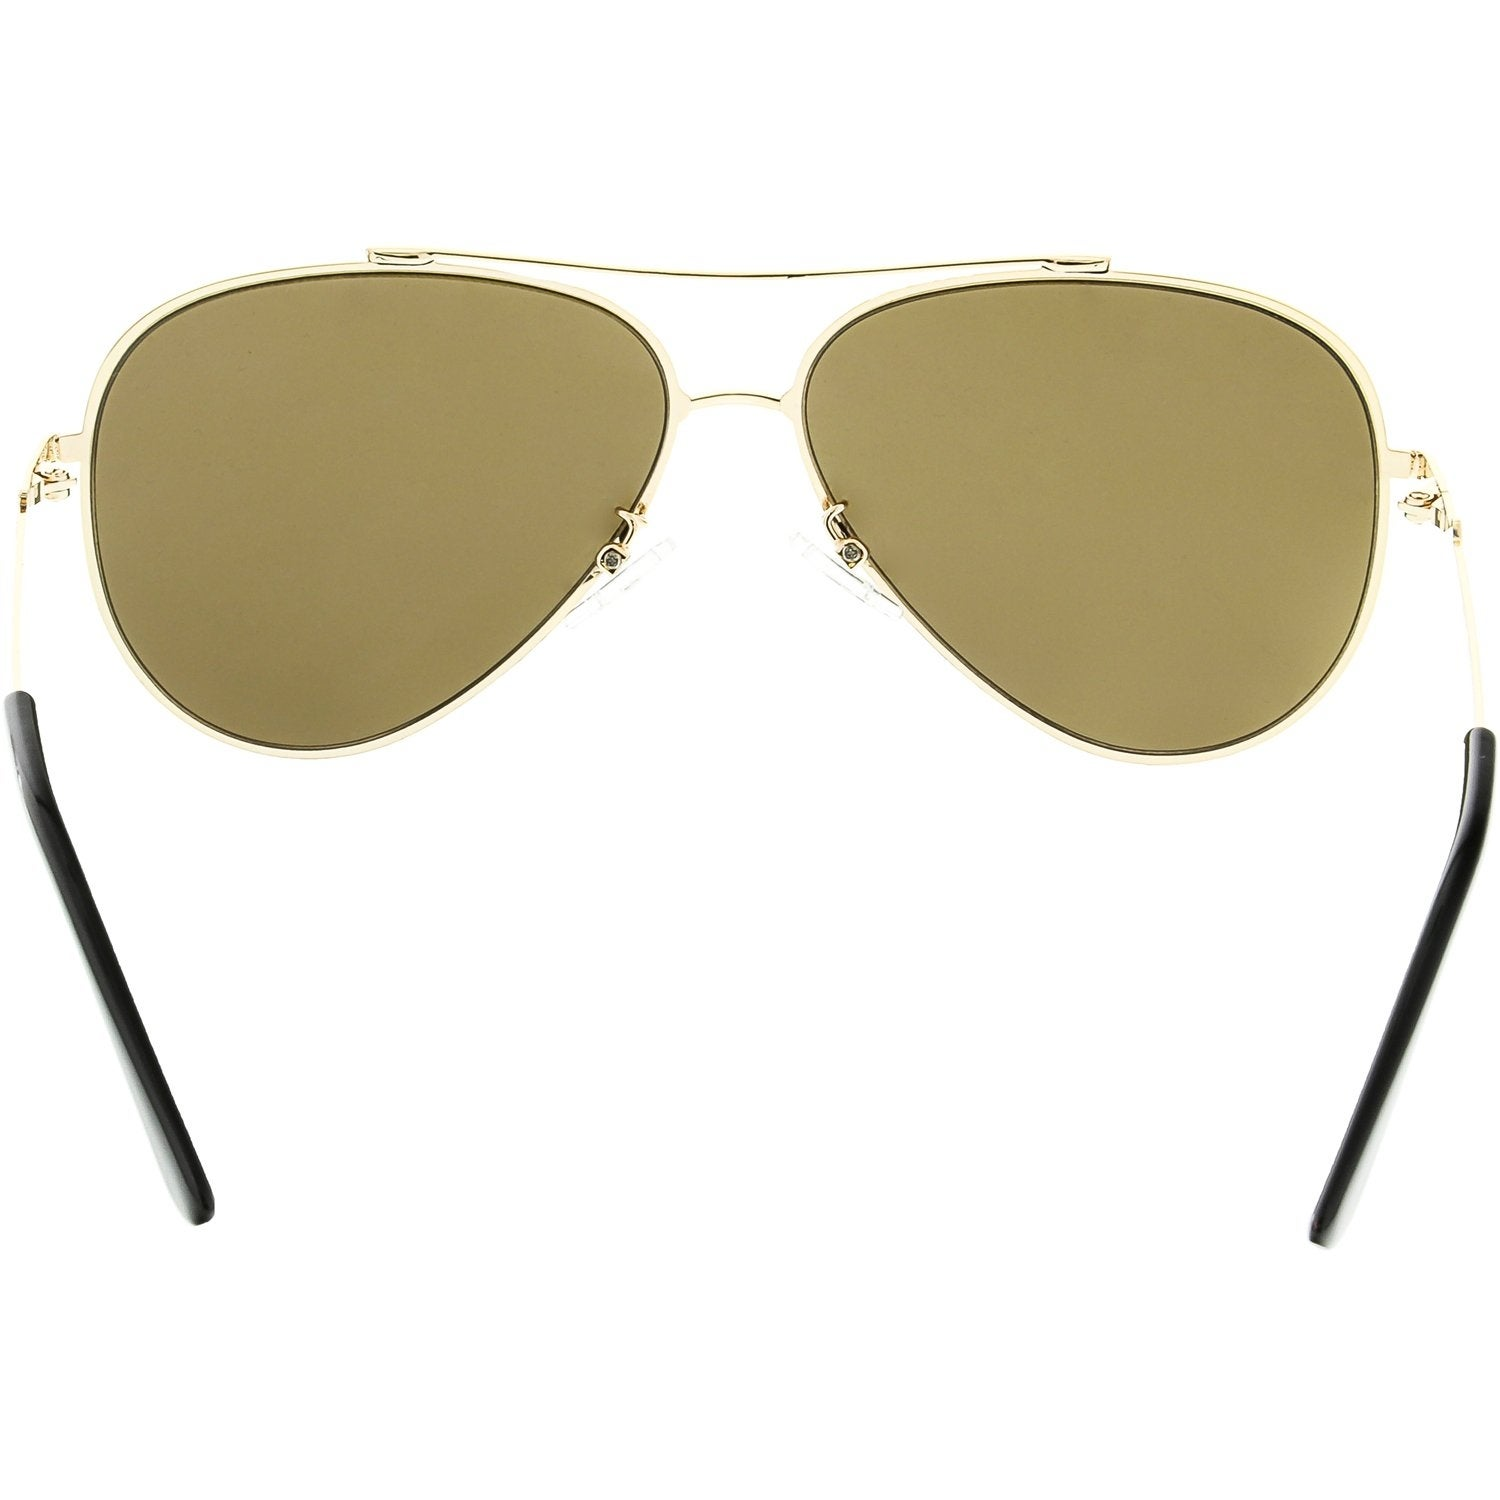 9a504fb731 Shop Guess Women s GF0301-32G-60 Gold Aviator Sunglasses - Free Shipping  Today - Overstock - 18852982